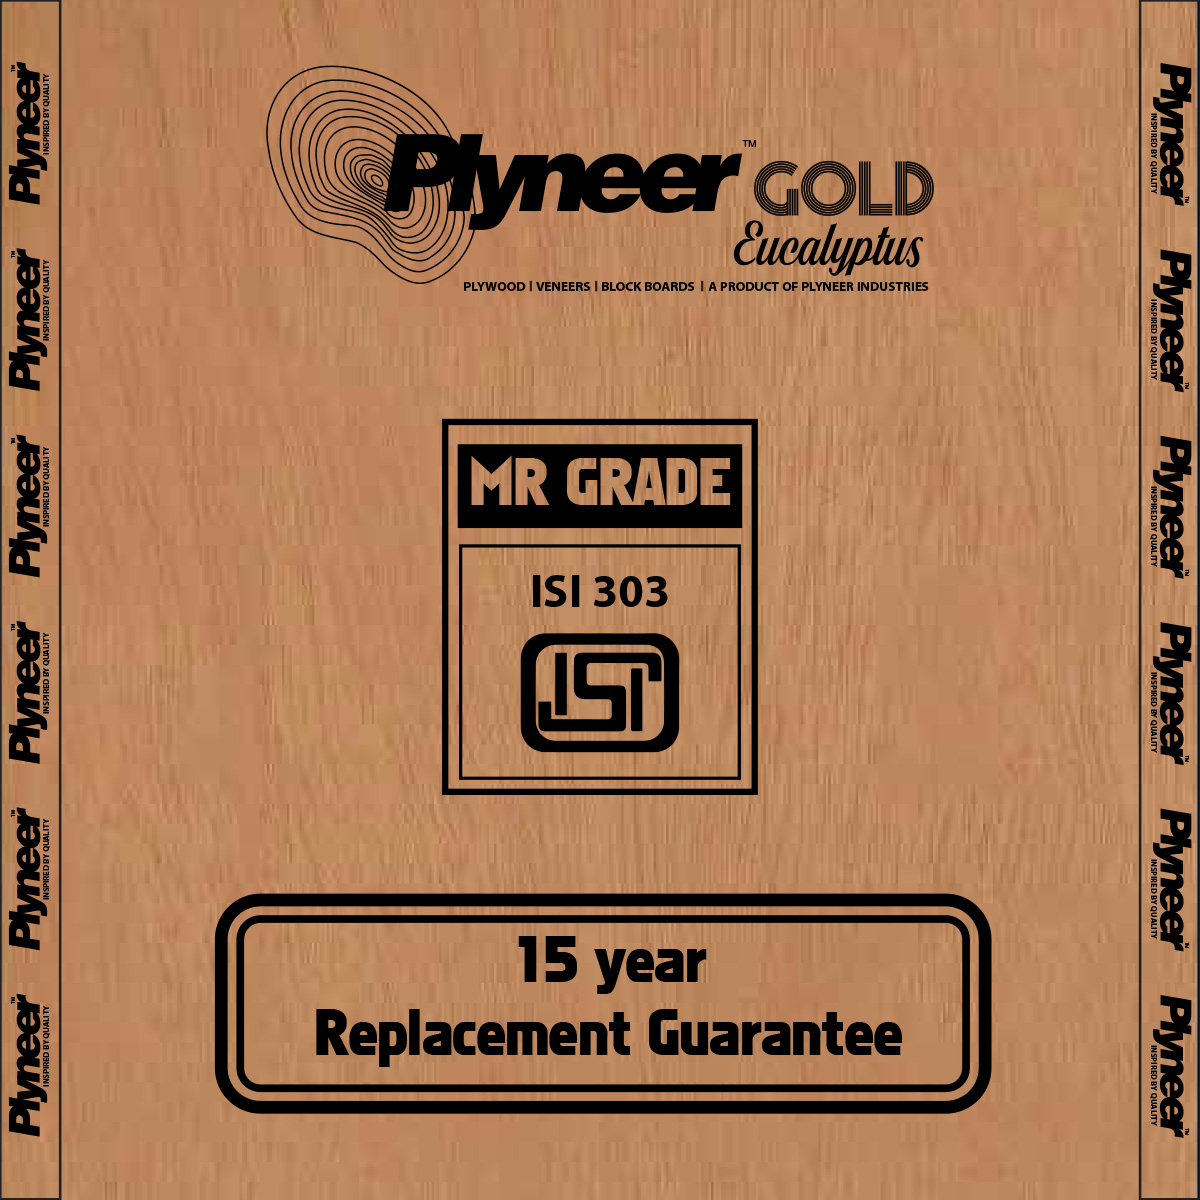 Plyneer Gold M.R. Pinewood Commercial Block Board *